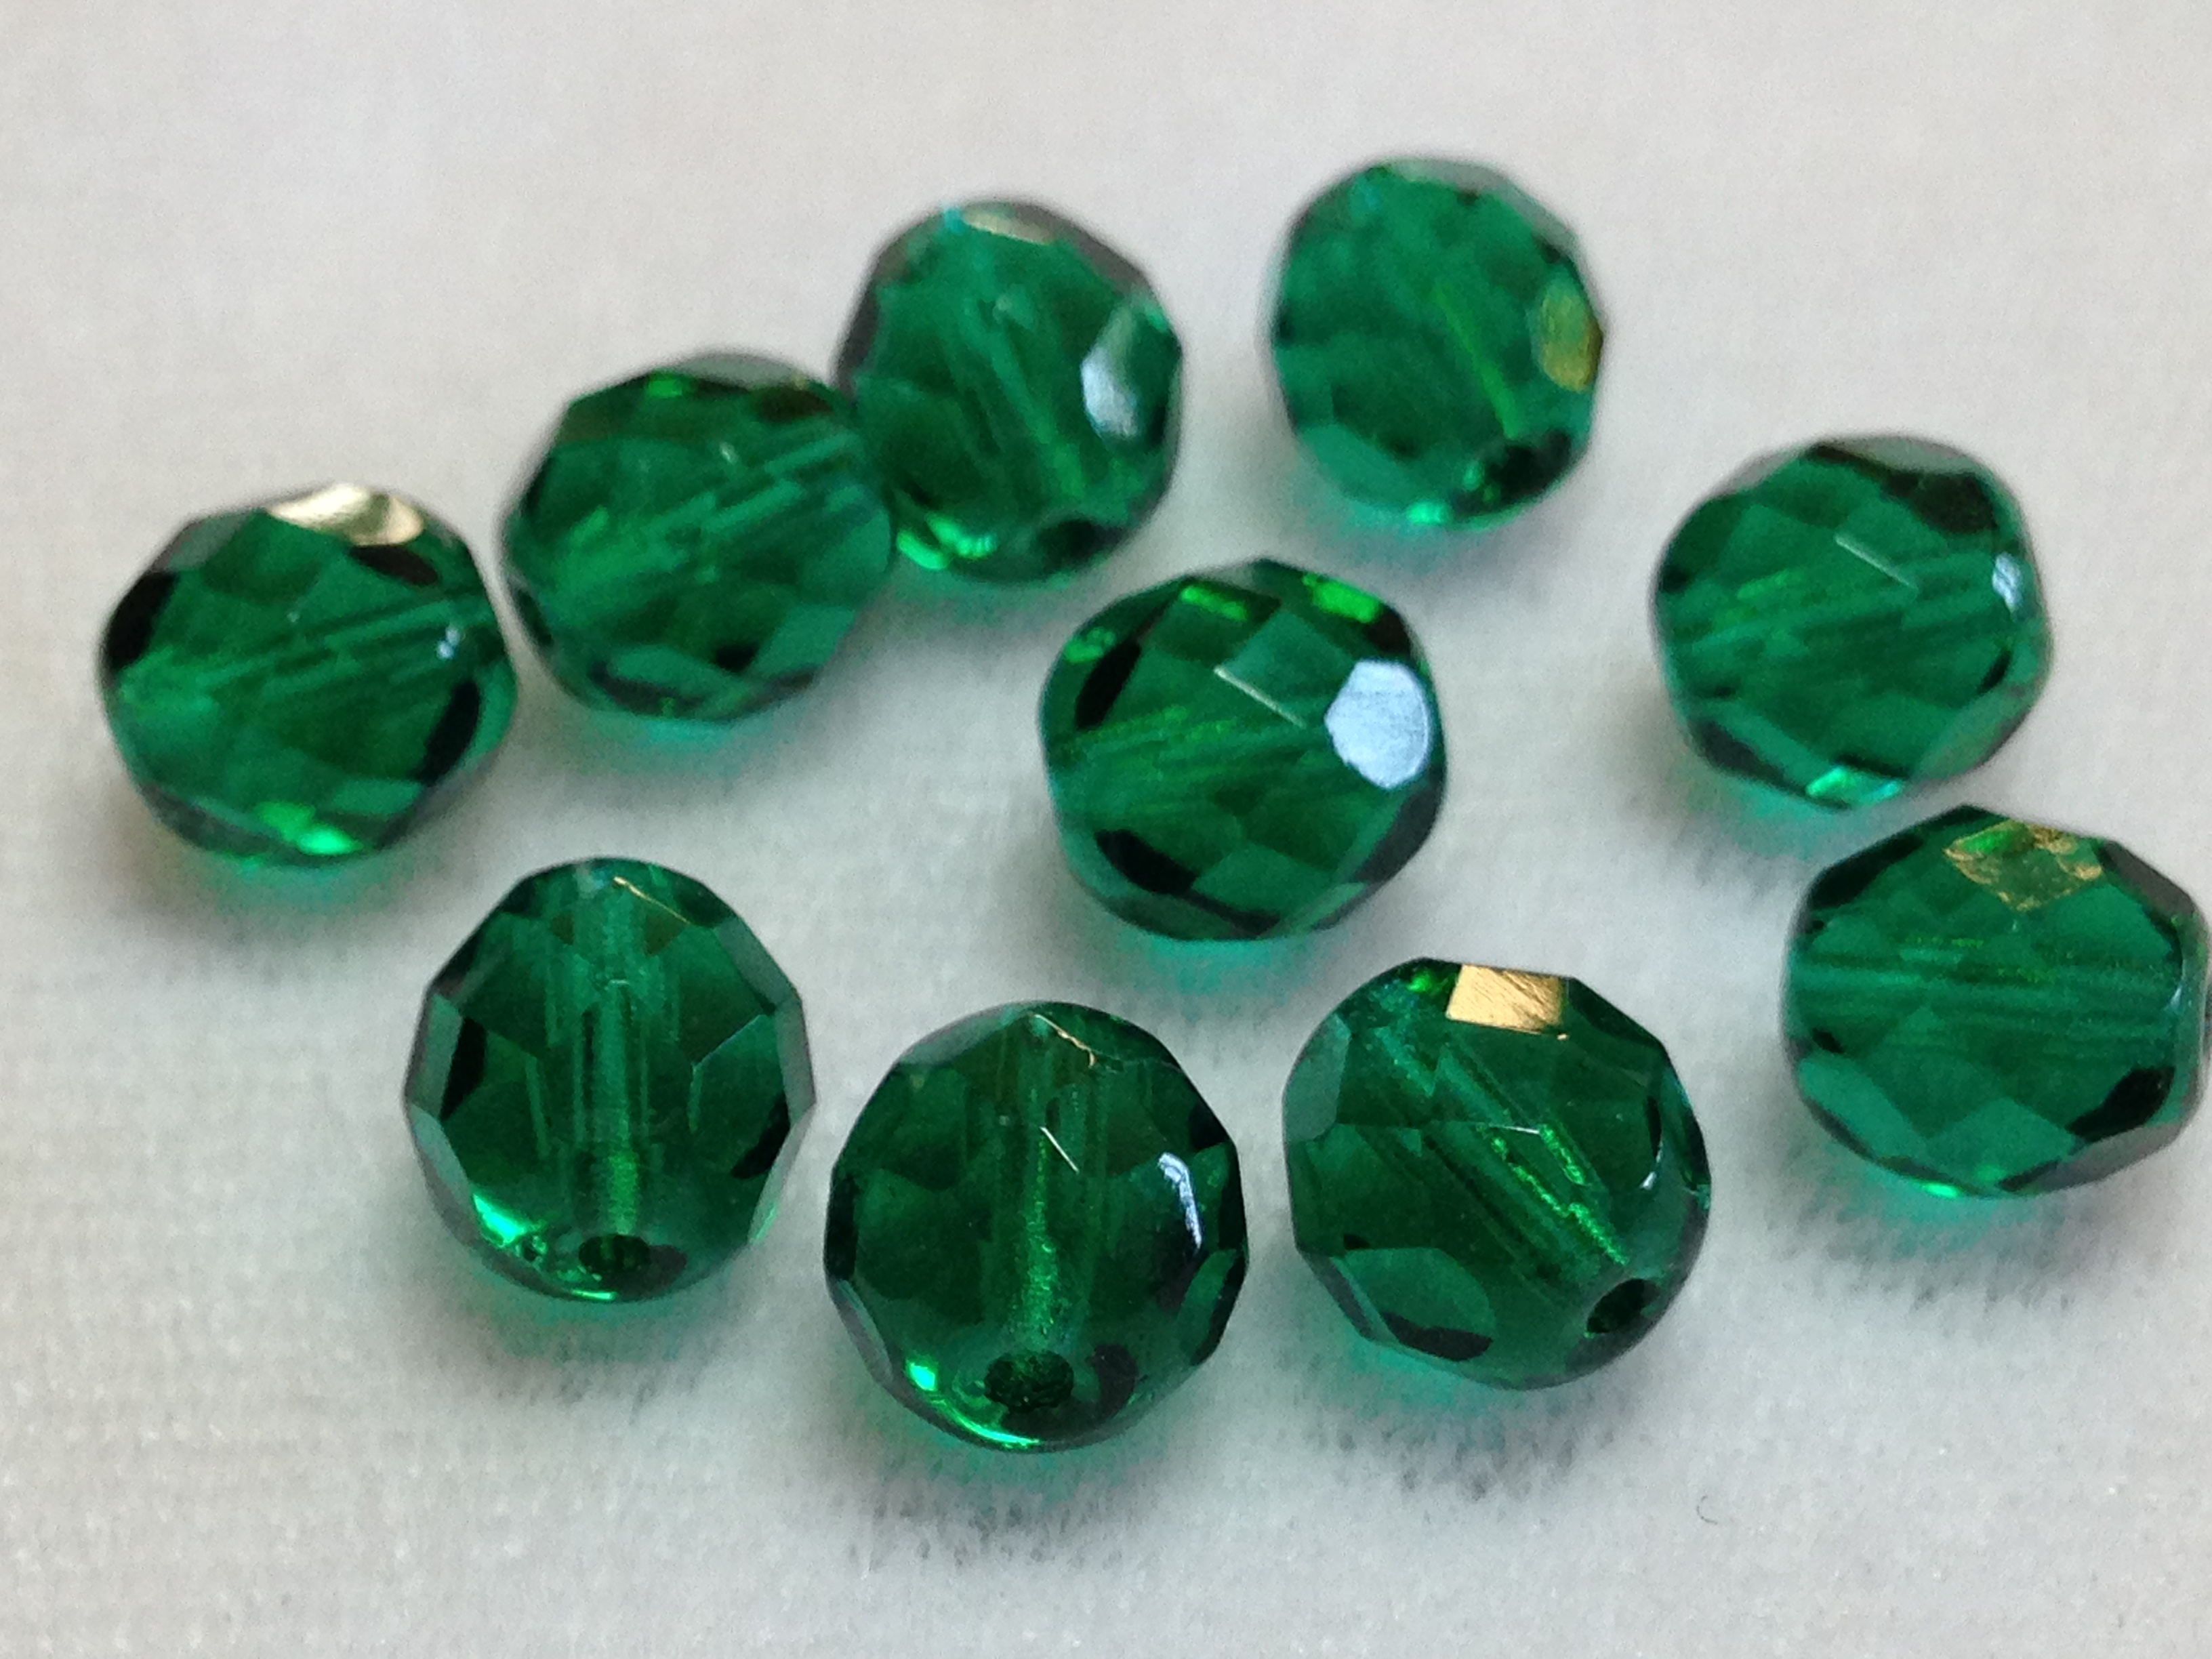 graded glr estate agl heat regent carat ring tagged diamond certified untreated collections colombian jewelry jewelers on mile treated platinum miracle main emerald